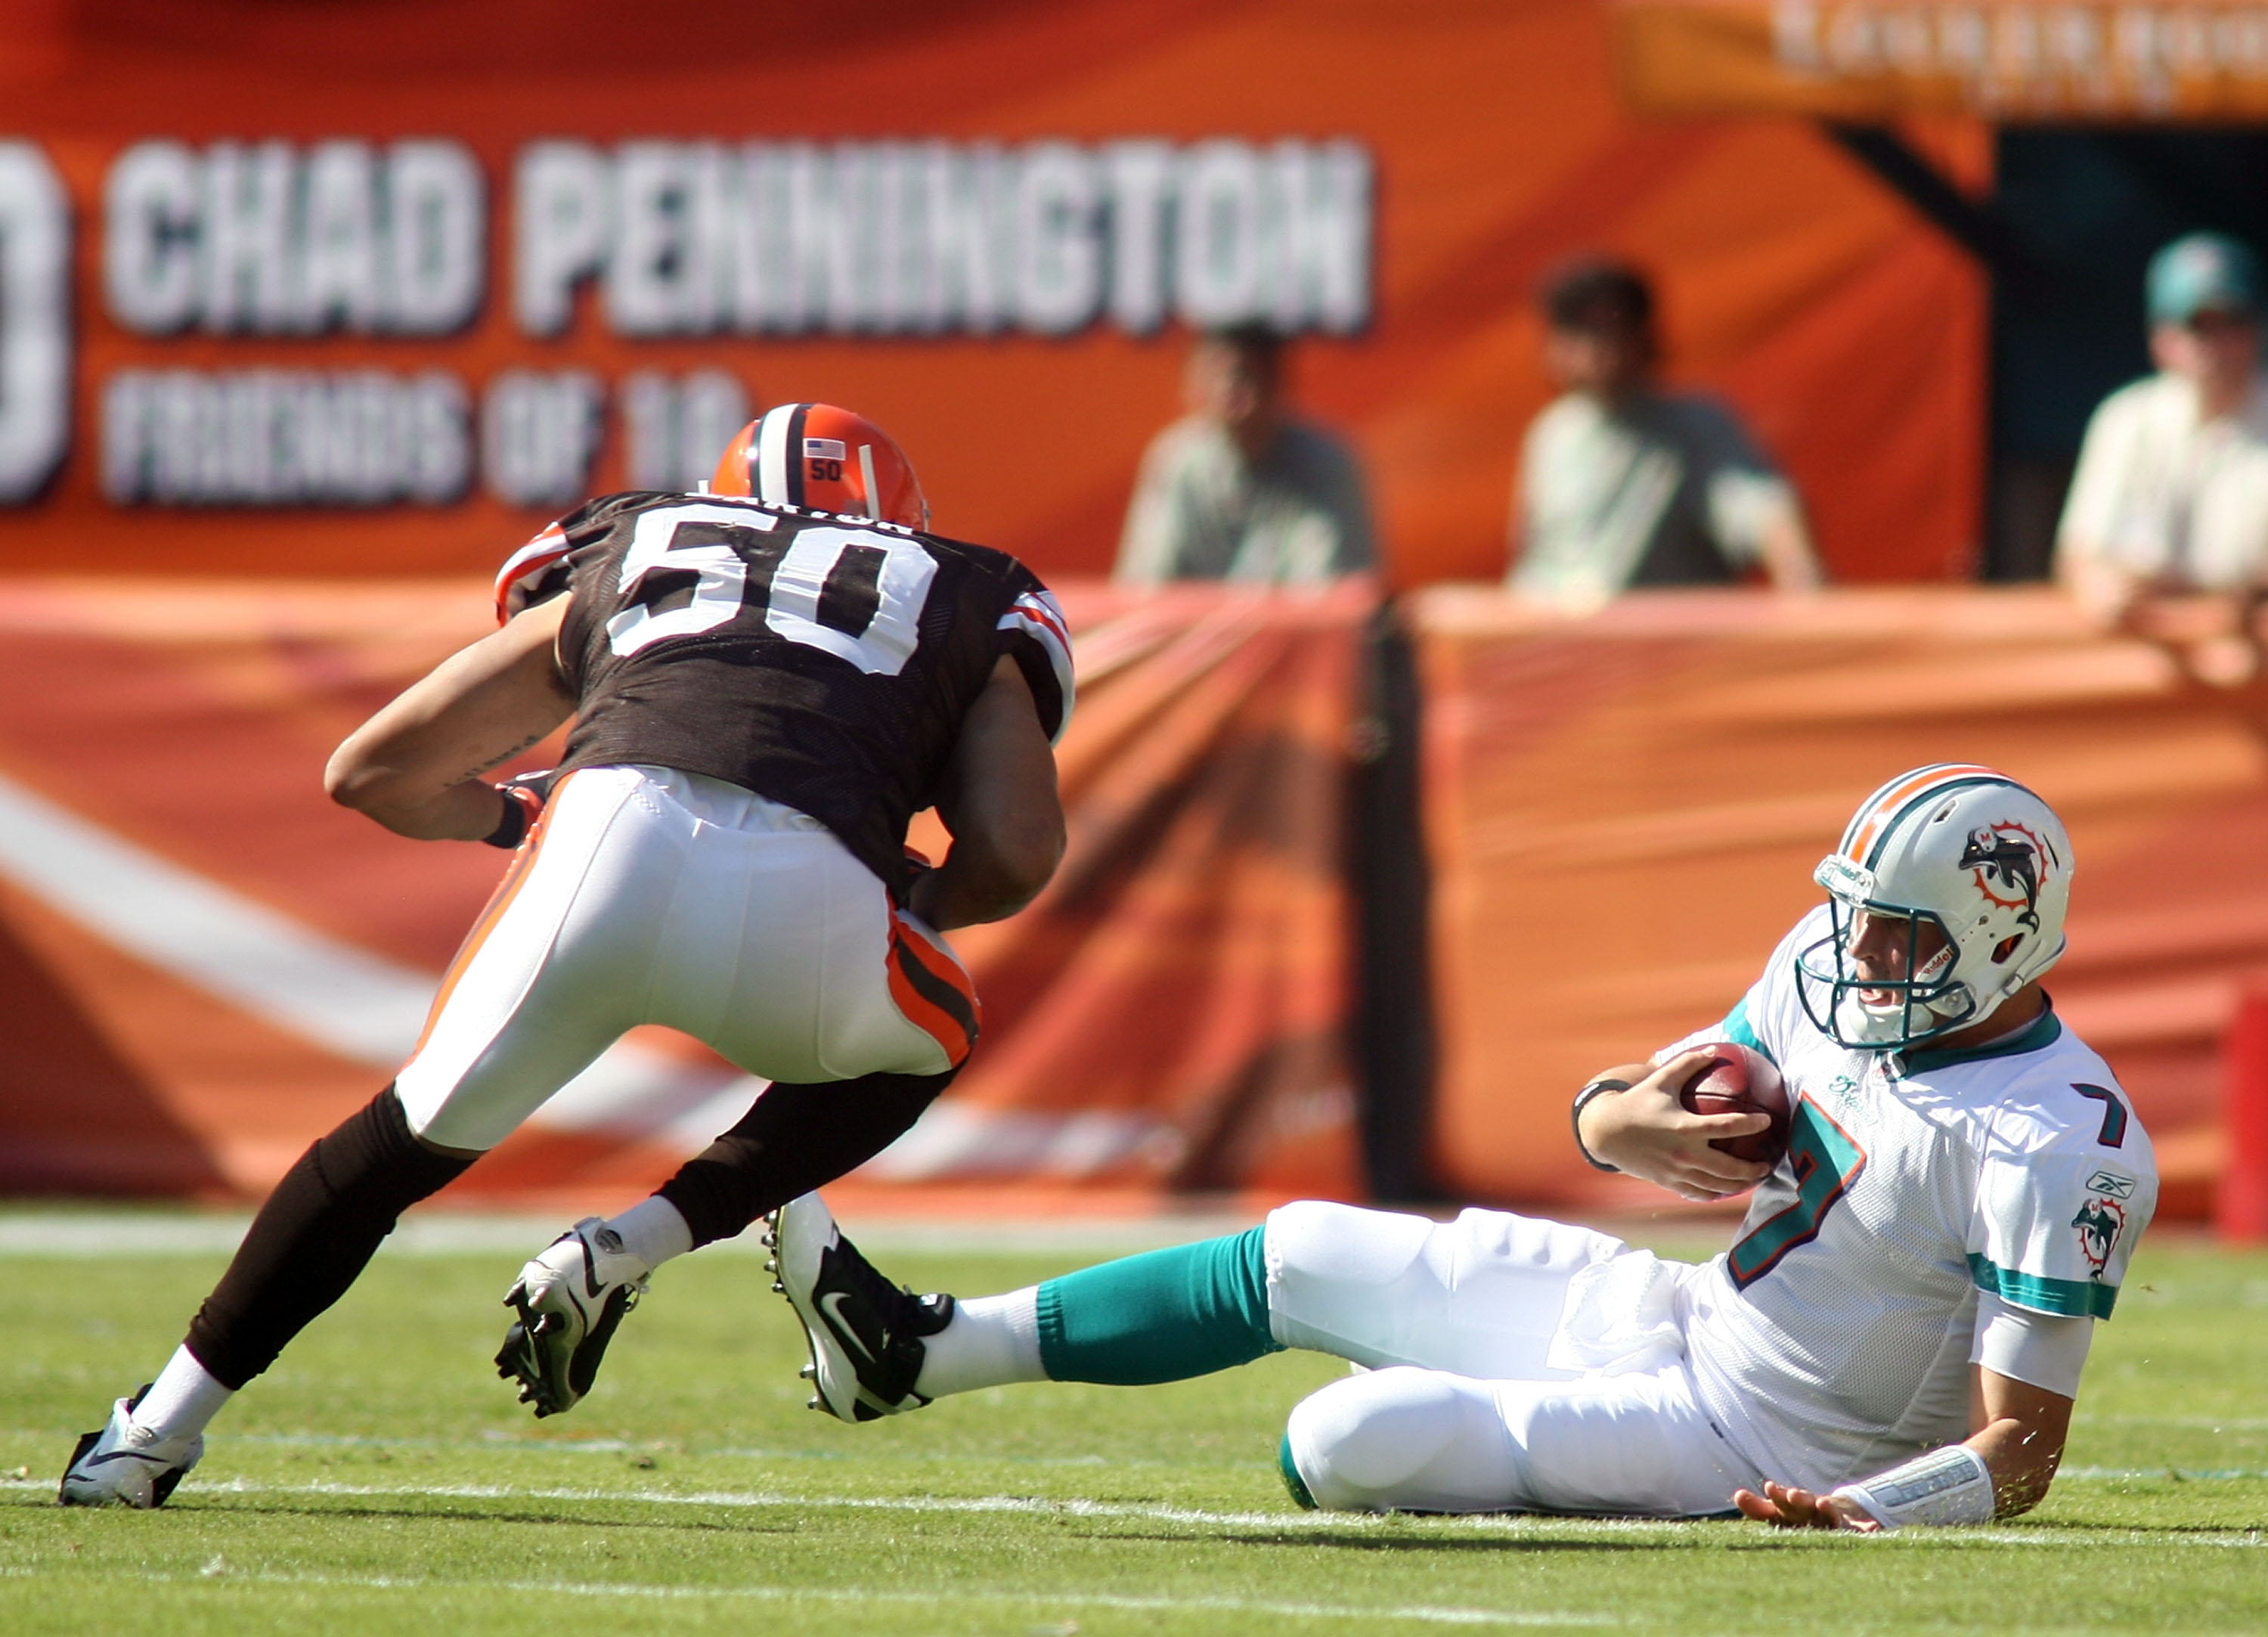 MIAMI - DECEMBER 05:  Quarterback Chad Henne #7 of the Miami Dolphins is hit late by Linebacker Eric Barton #50 of the Cleveland Browns while sliding at Sun Life Stadium on December 5, 2010 in Miami, Florida.  (Photo by Marc Serota/Getty Images)